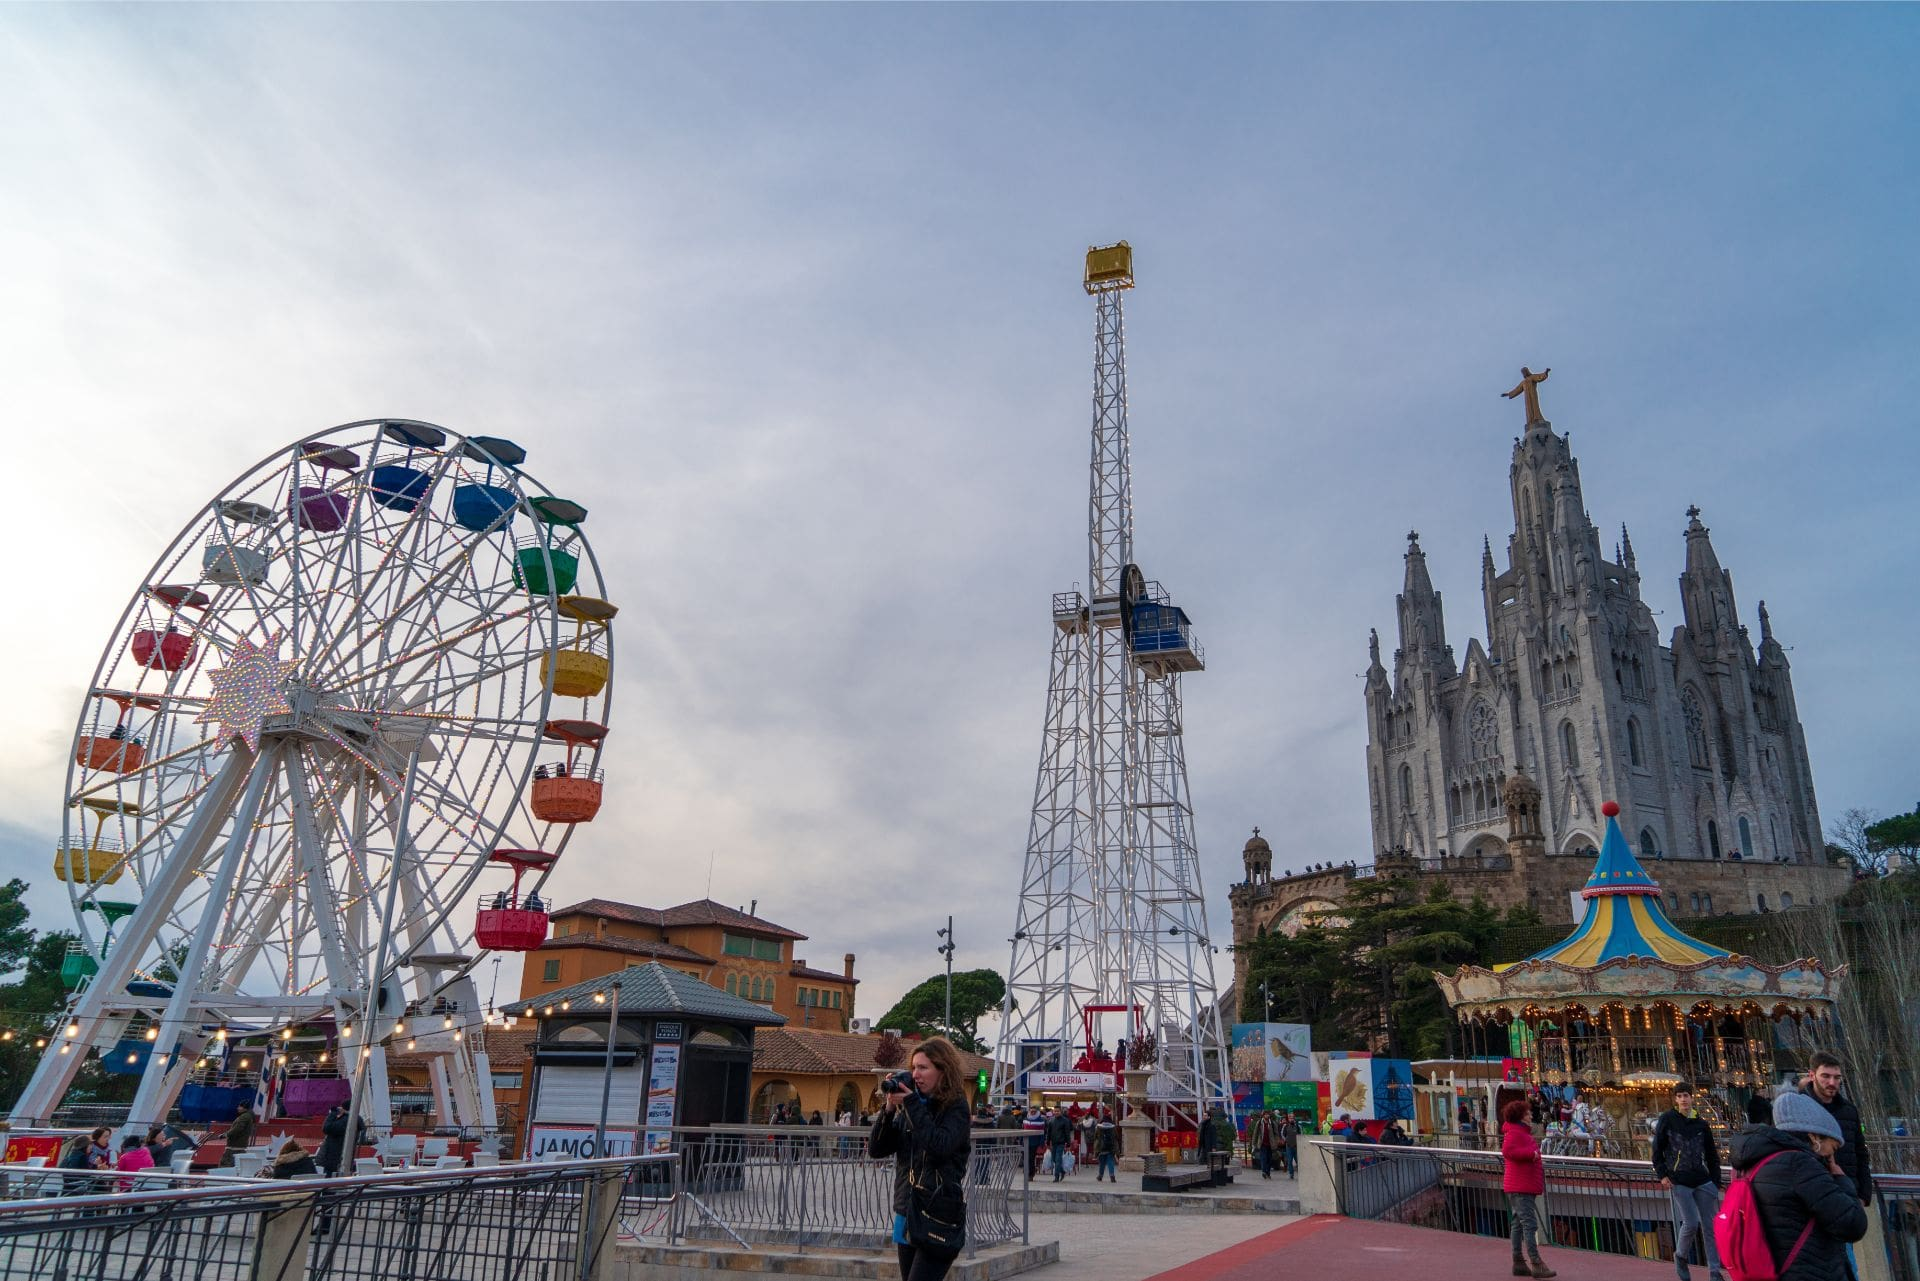 theme-park-ferris-wheel-rides-at-tibidabo-amusement-park-at-the-highest-point-in-barcelona-at-sunset